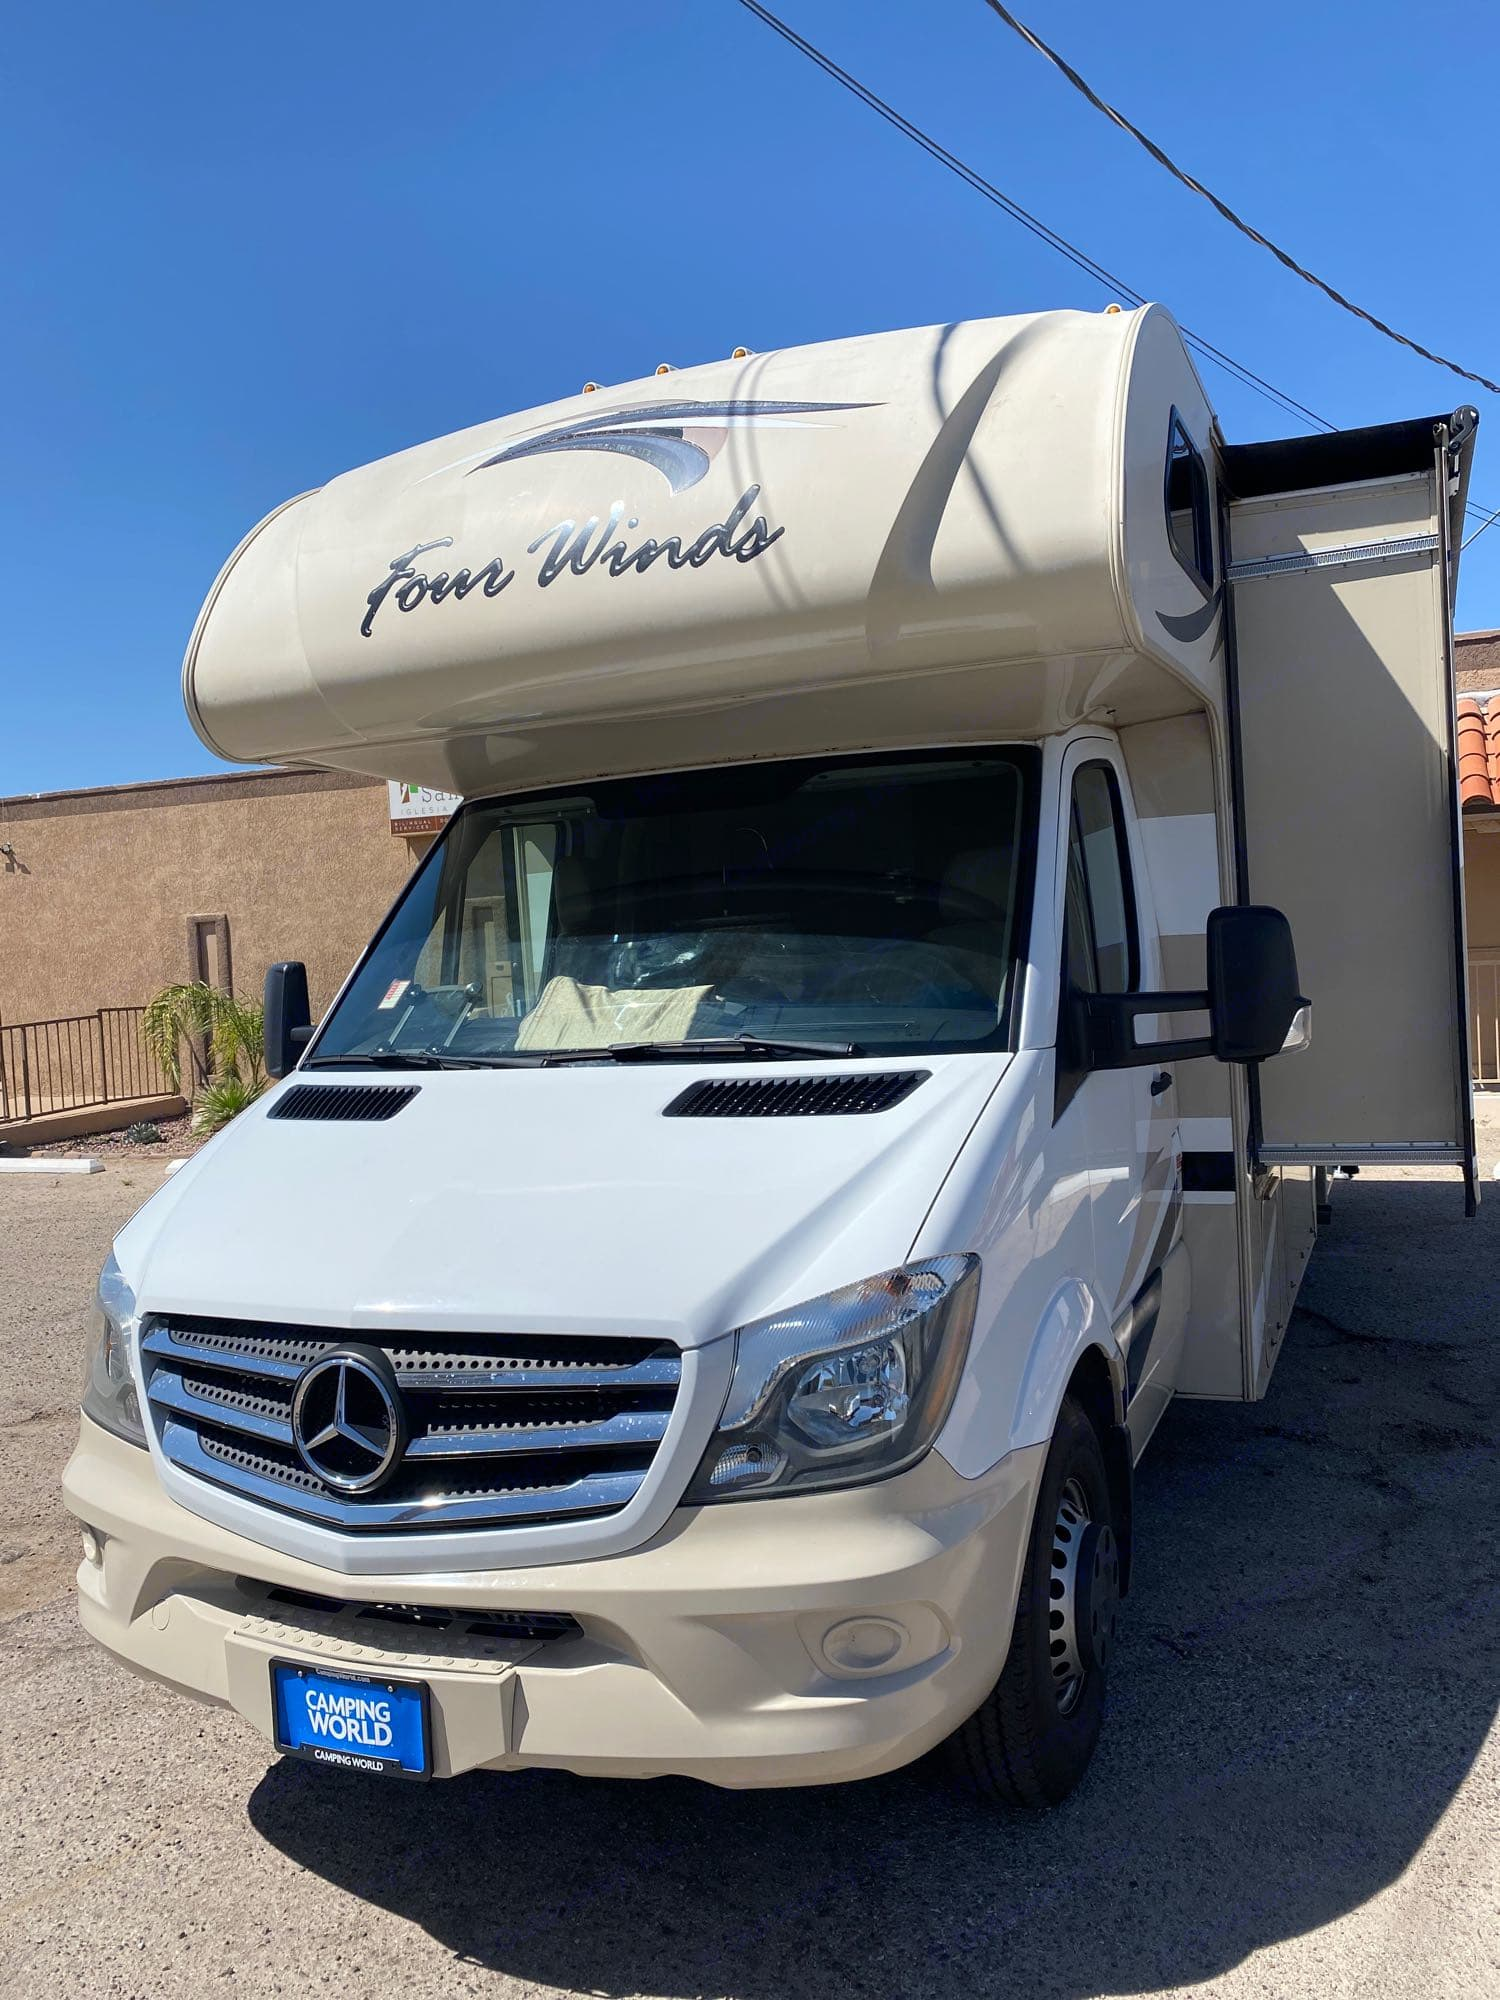 LED running lights/ Automatic transmission/ Mercedes. Thor Motor Coach Four Winds 24ws 2018